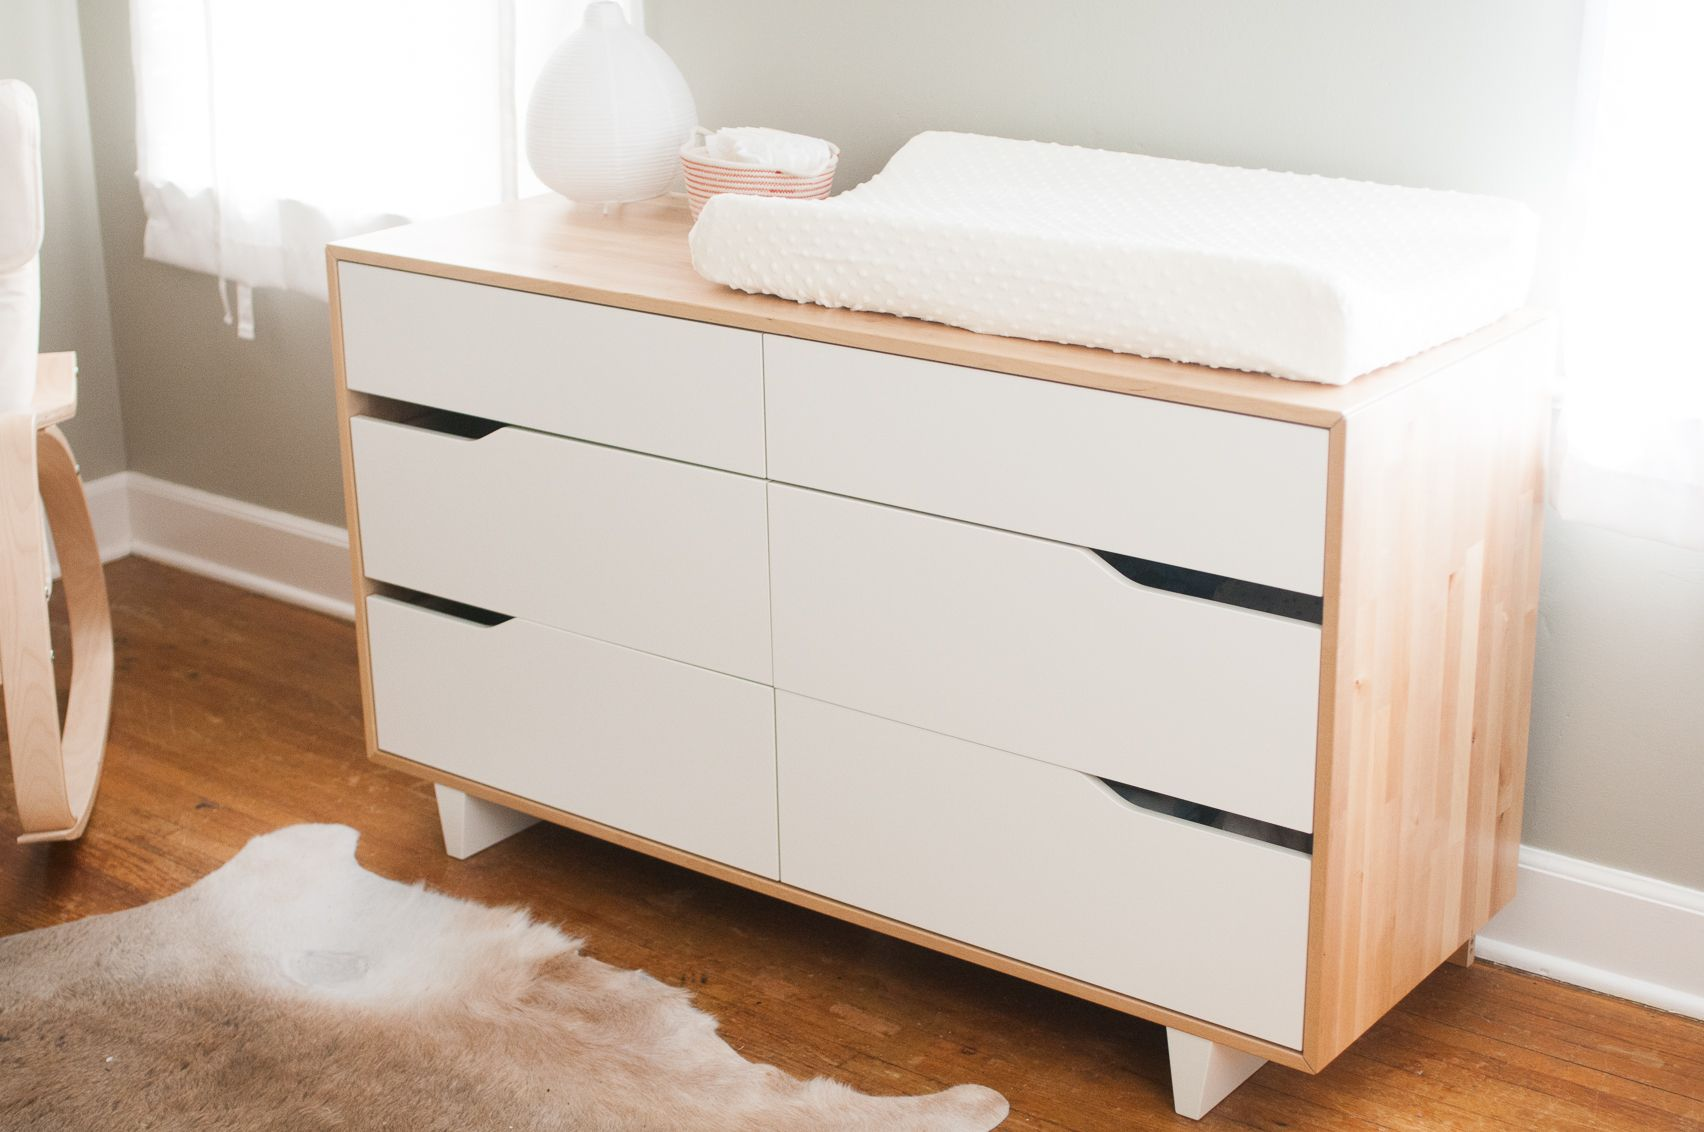 ikea mandal on pinterest ikea dressers and nurseries. Black Bedroom Furniture Sets. Home Design Ideas